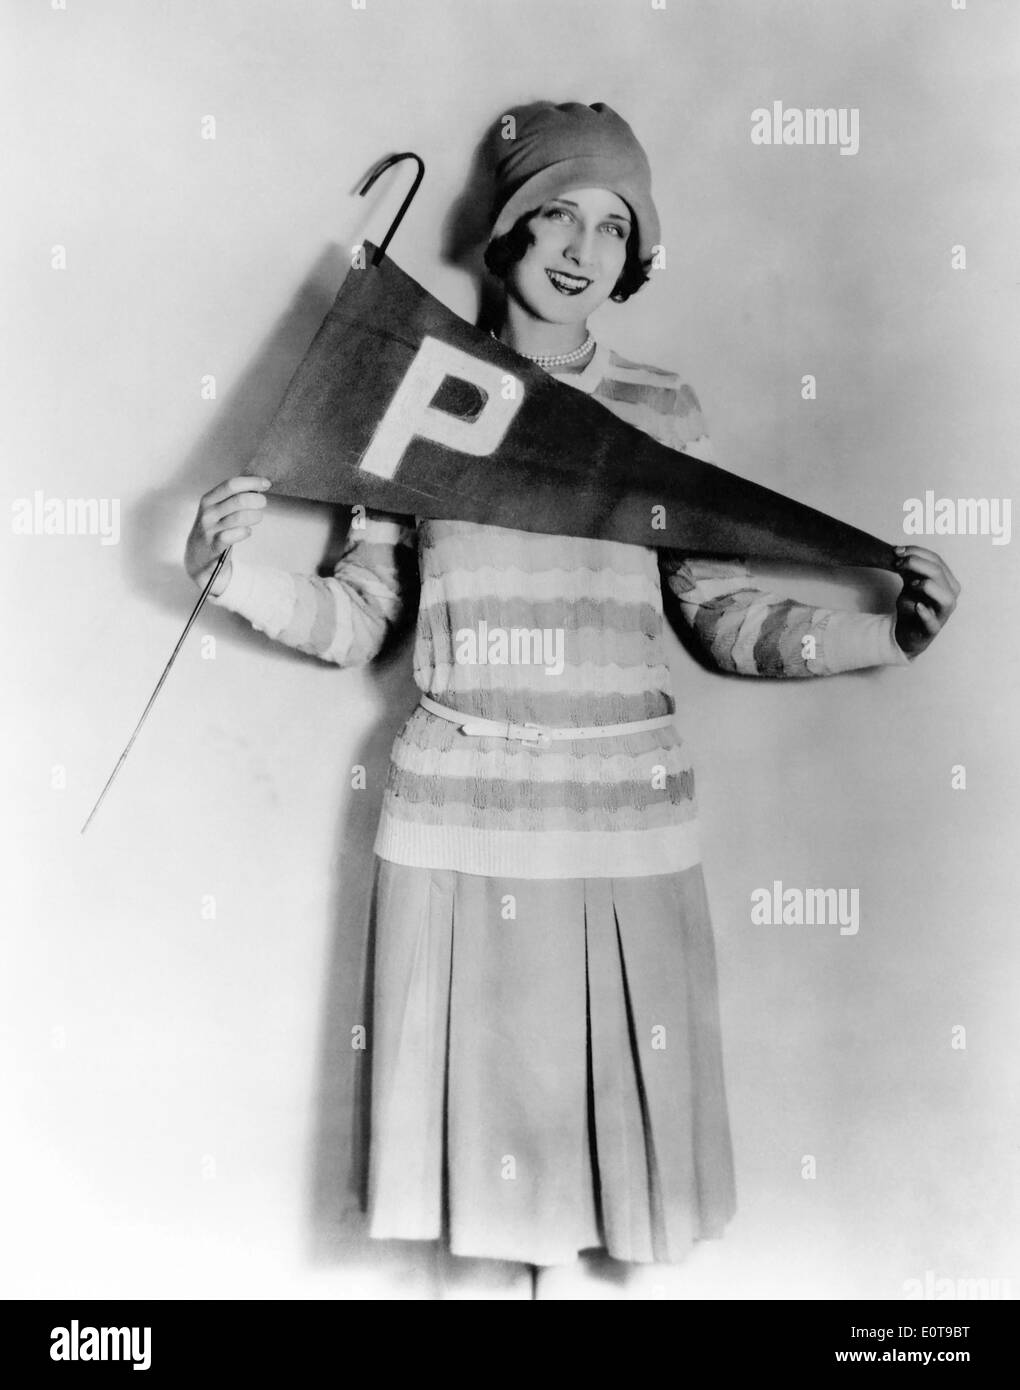 Norma Shearer, Actress, Publicity Portrait Holding Pennant, circa 1920's - Stock Image